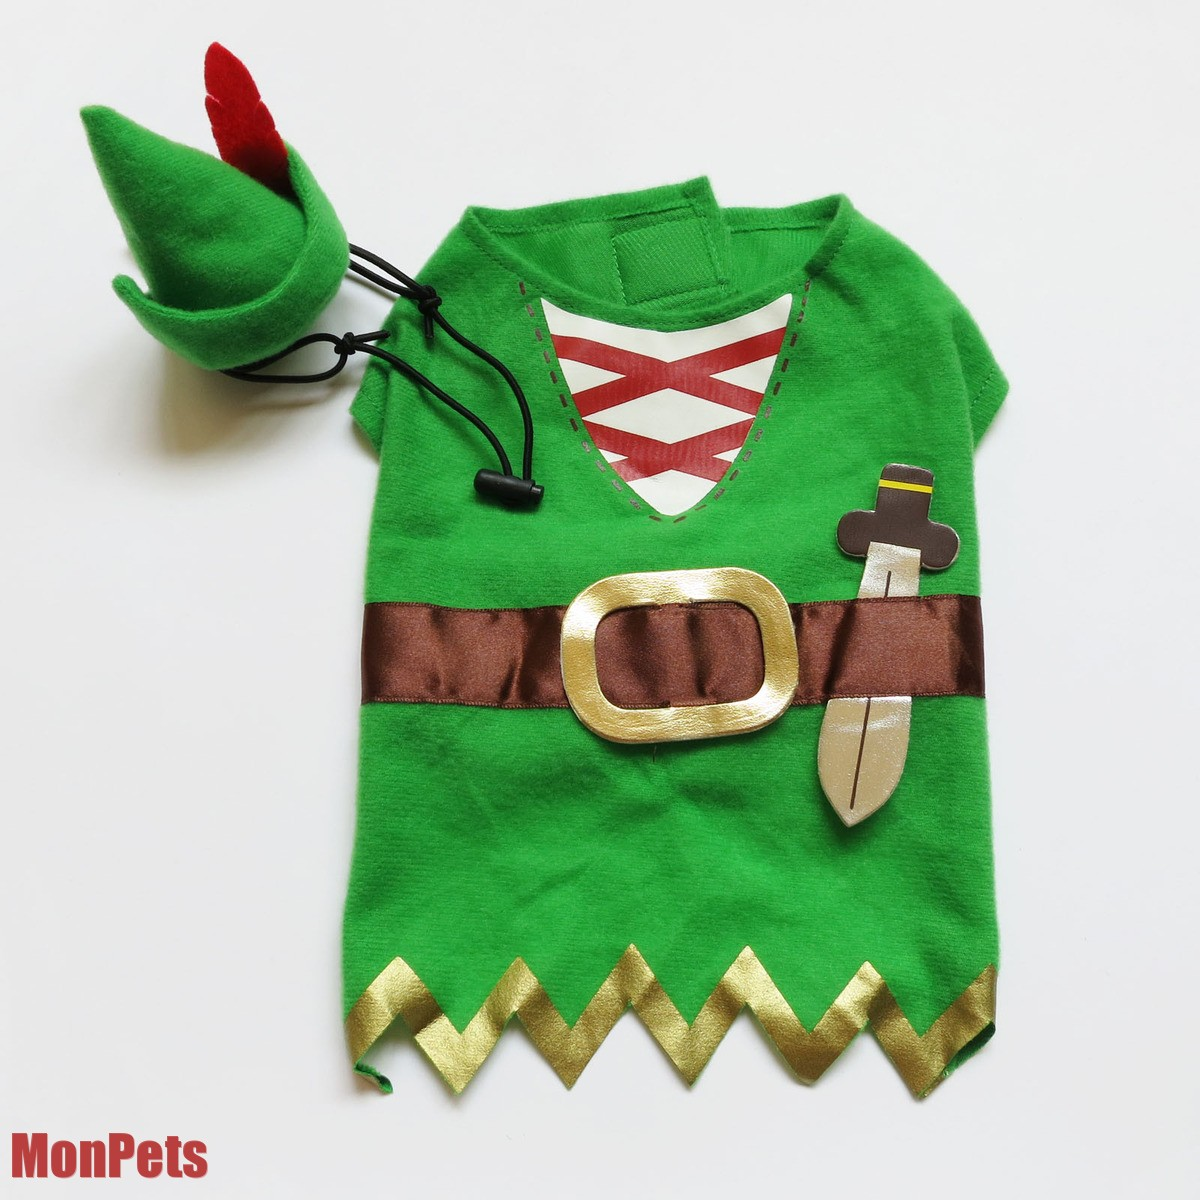 Cute Pet Dog Robin Hood Costume Halloween Outfit Dog Clothes Pet Apparel XS M L